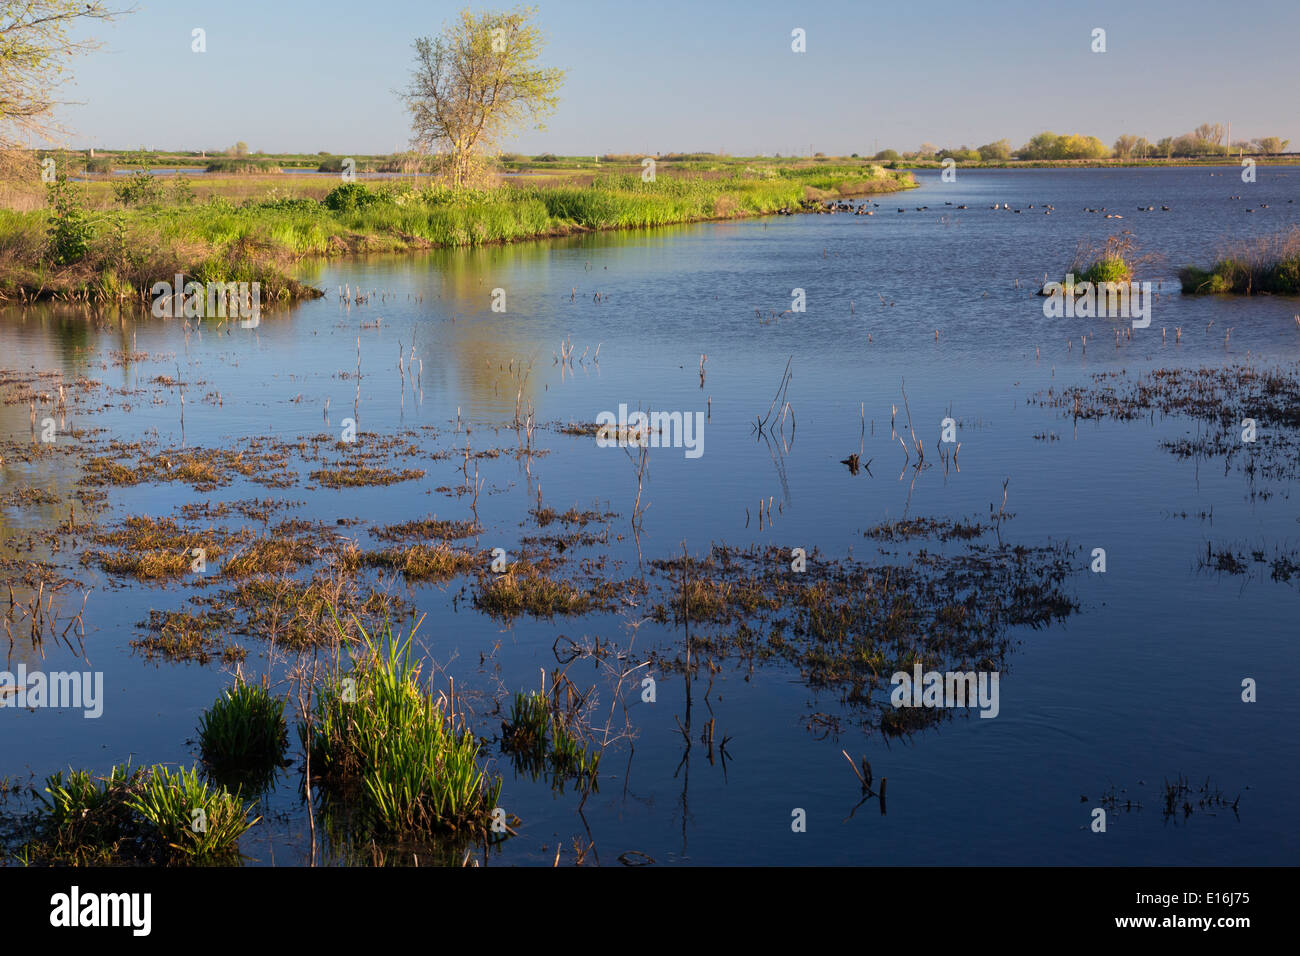 CALIFORNIA - Wetland area at the Cosumes River Preserve Wildlife Area in the Central Valley, located along the Pacific Flyway. - Stock Image